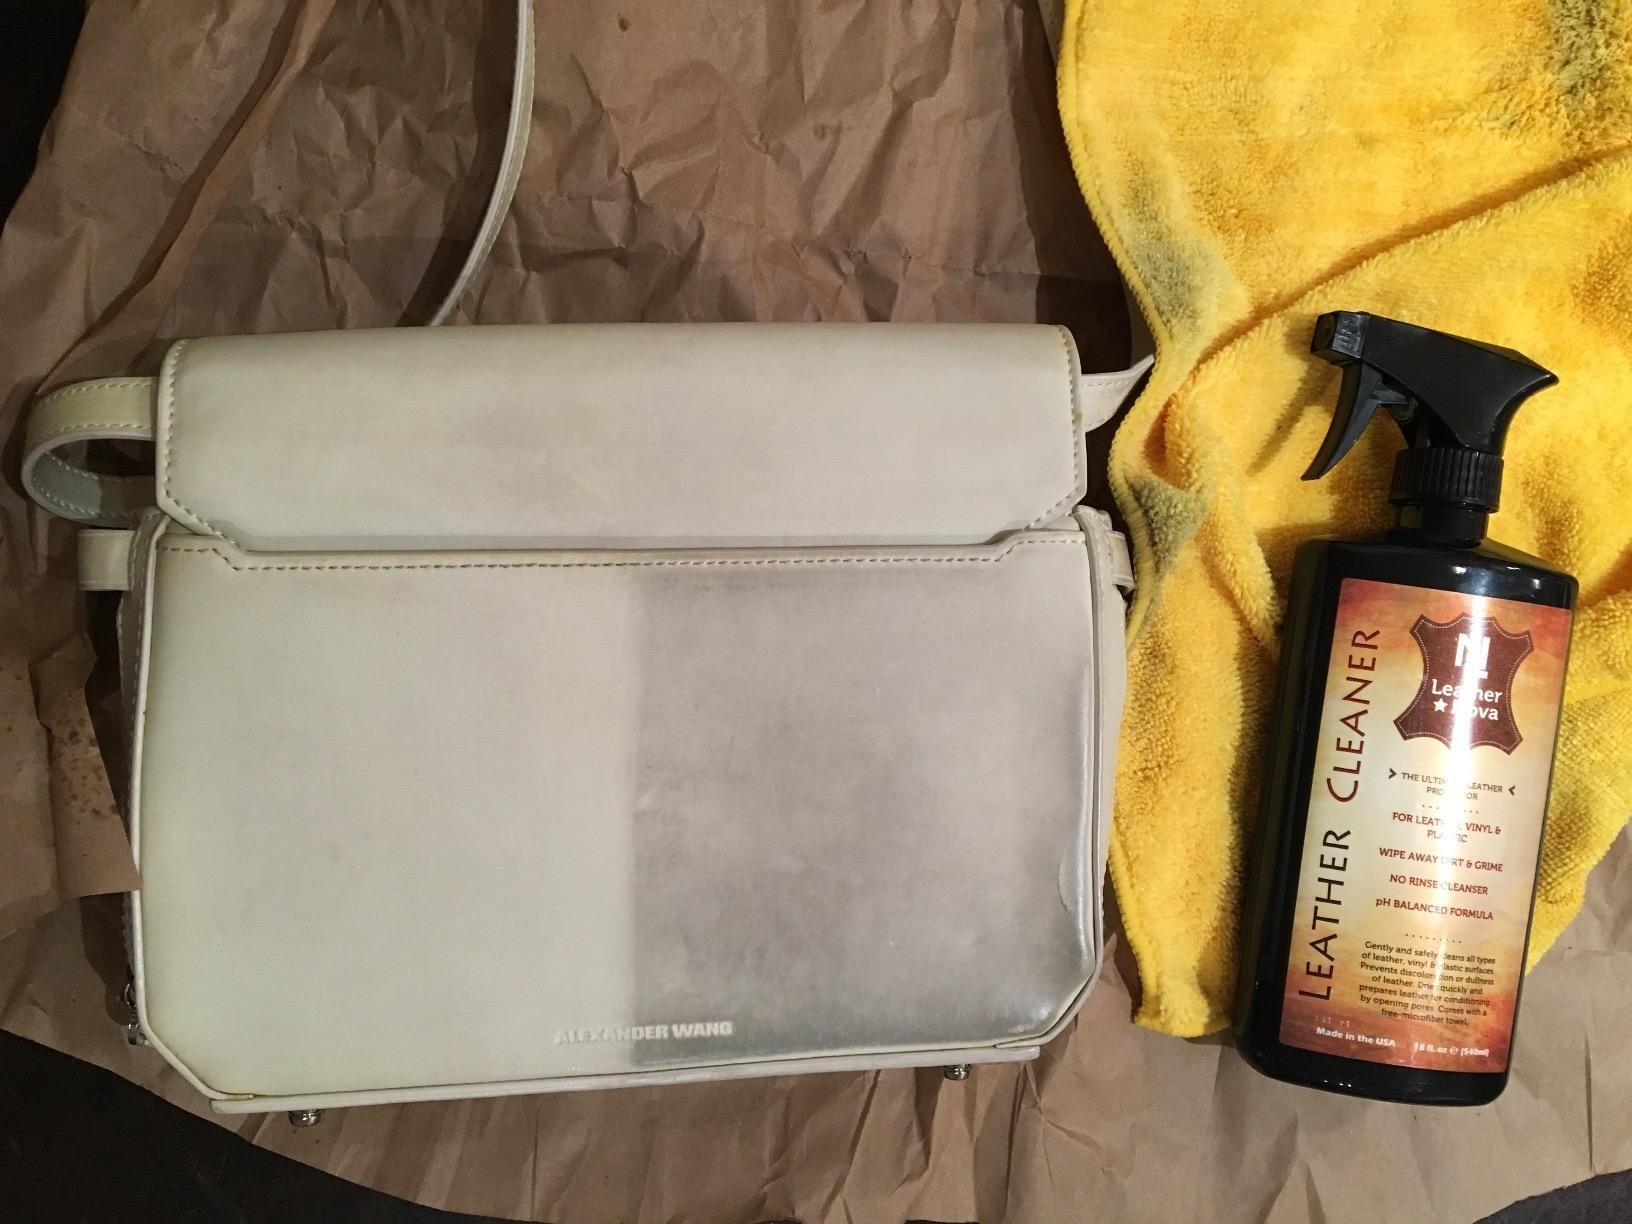 reviewer's leather purse next to spray cleaner looking very dirty on one side and clean on the other